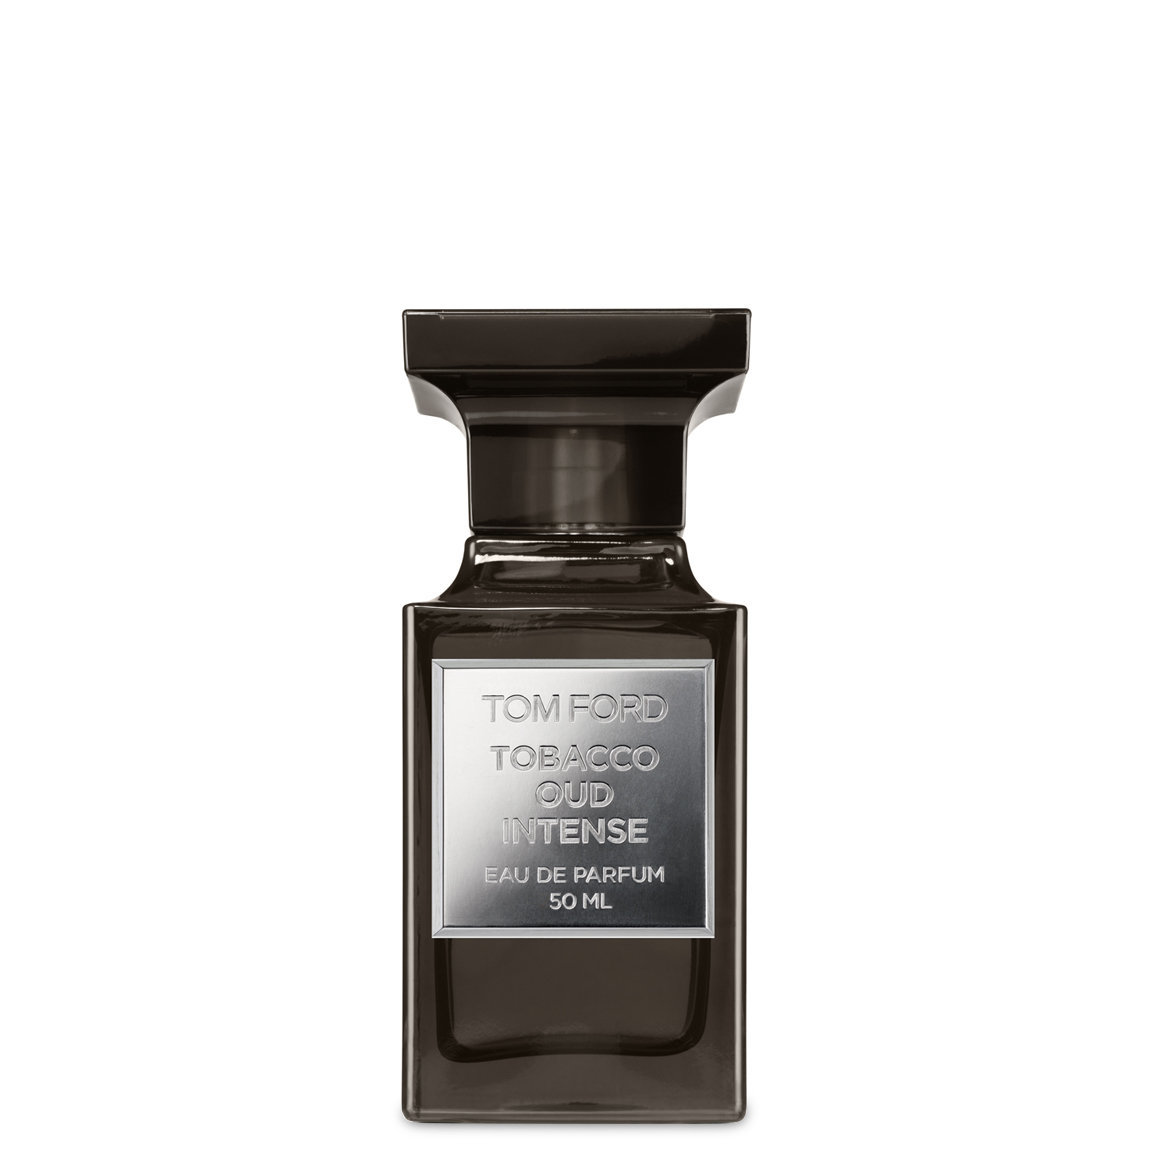 TOM FORD Tobacco Oud Intense alternative view 1 - product swatch.